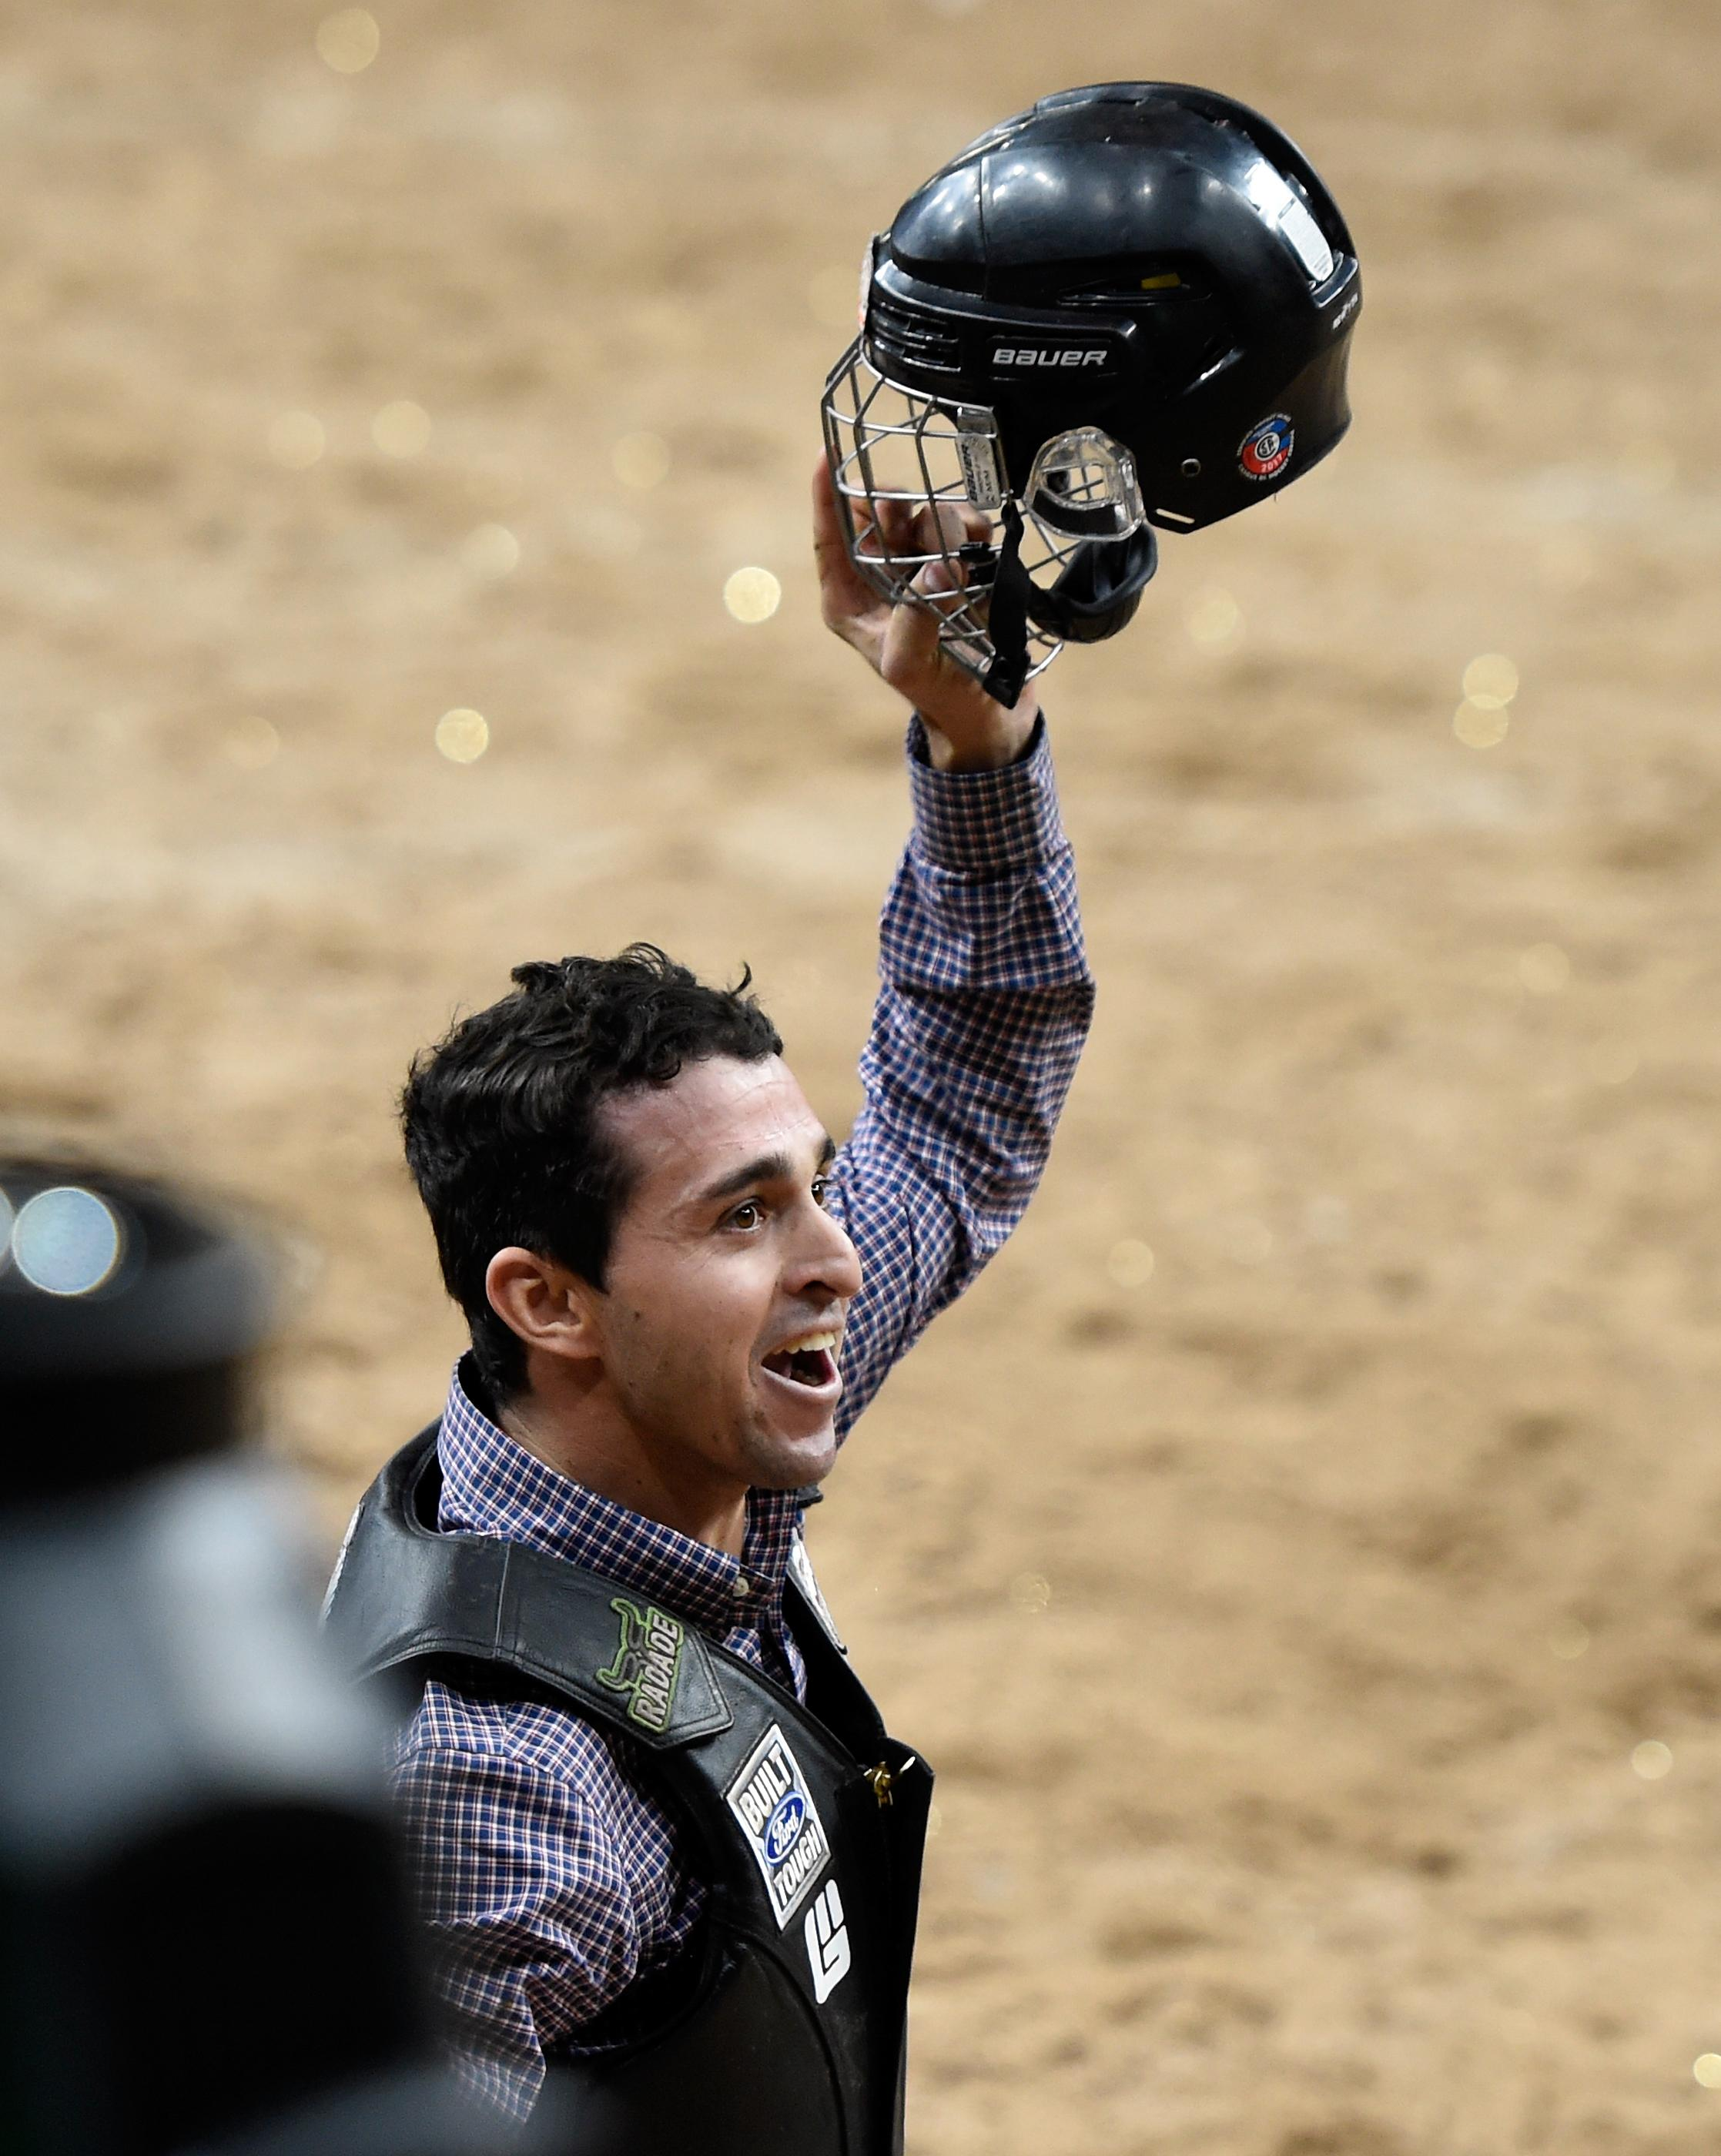 Claudio Montanha Jr. reacts after his ride during the PBR World Finals at T-Mobile Arena Sunday, Nov. 5, 2017, in Las Vegas. [David Becker/Las Vegas News Bureau]